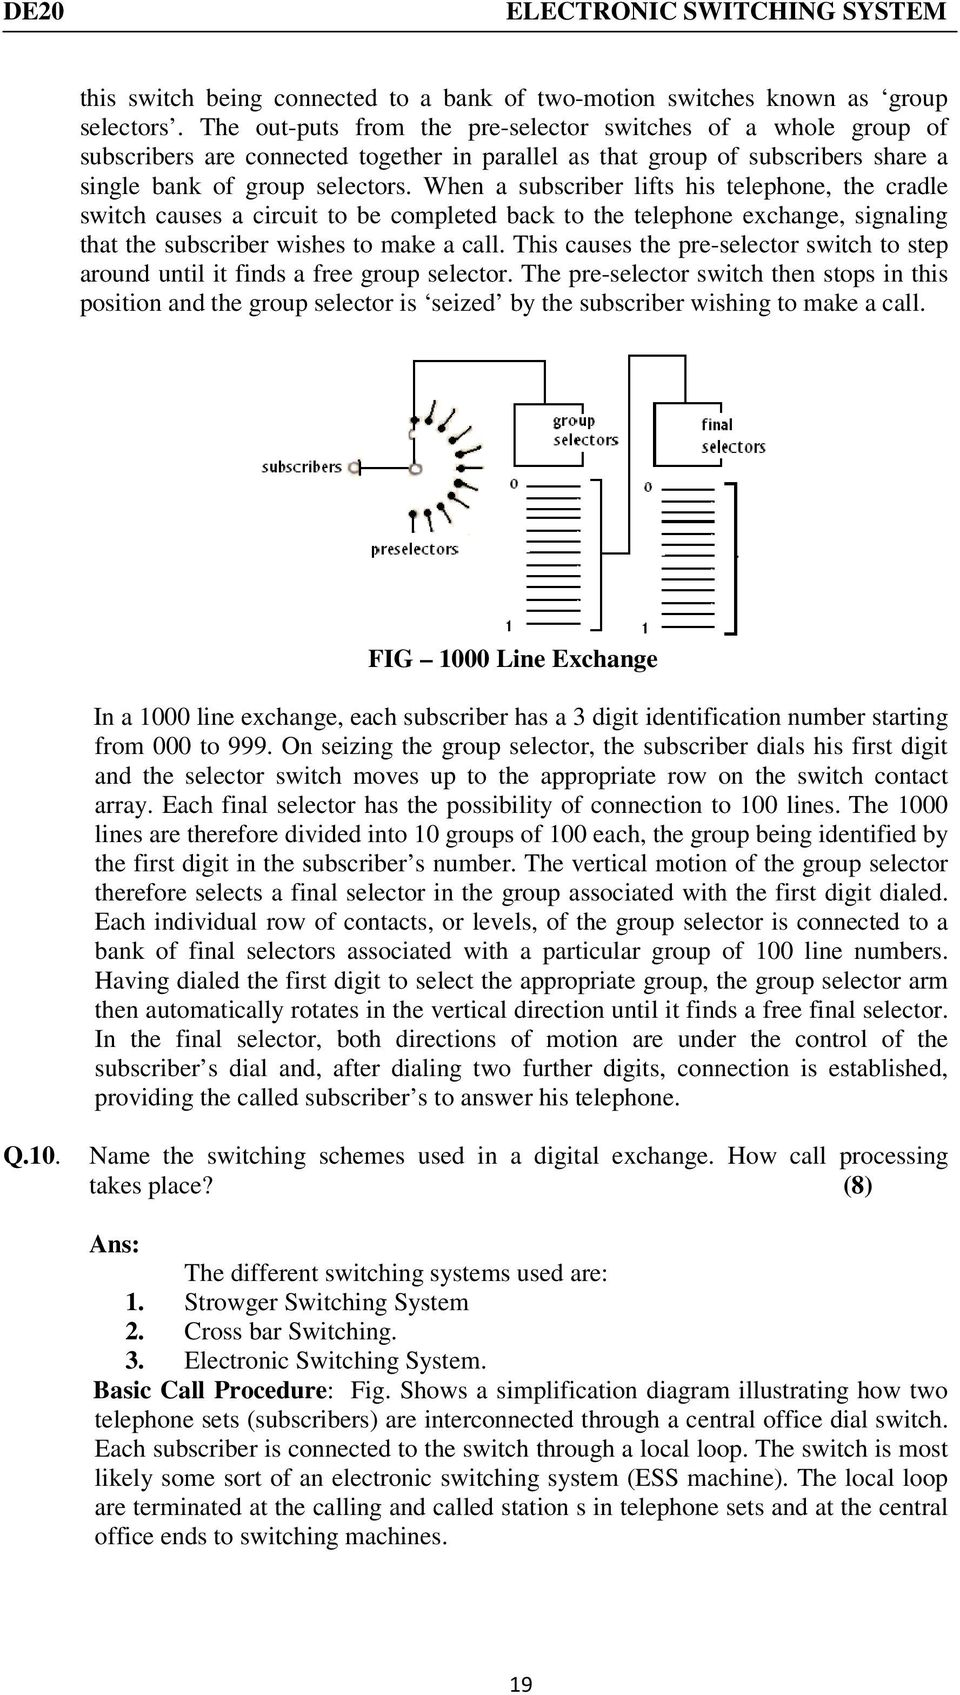 TYPICAL QUESTIONS & ANSWERS - PDF